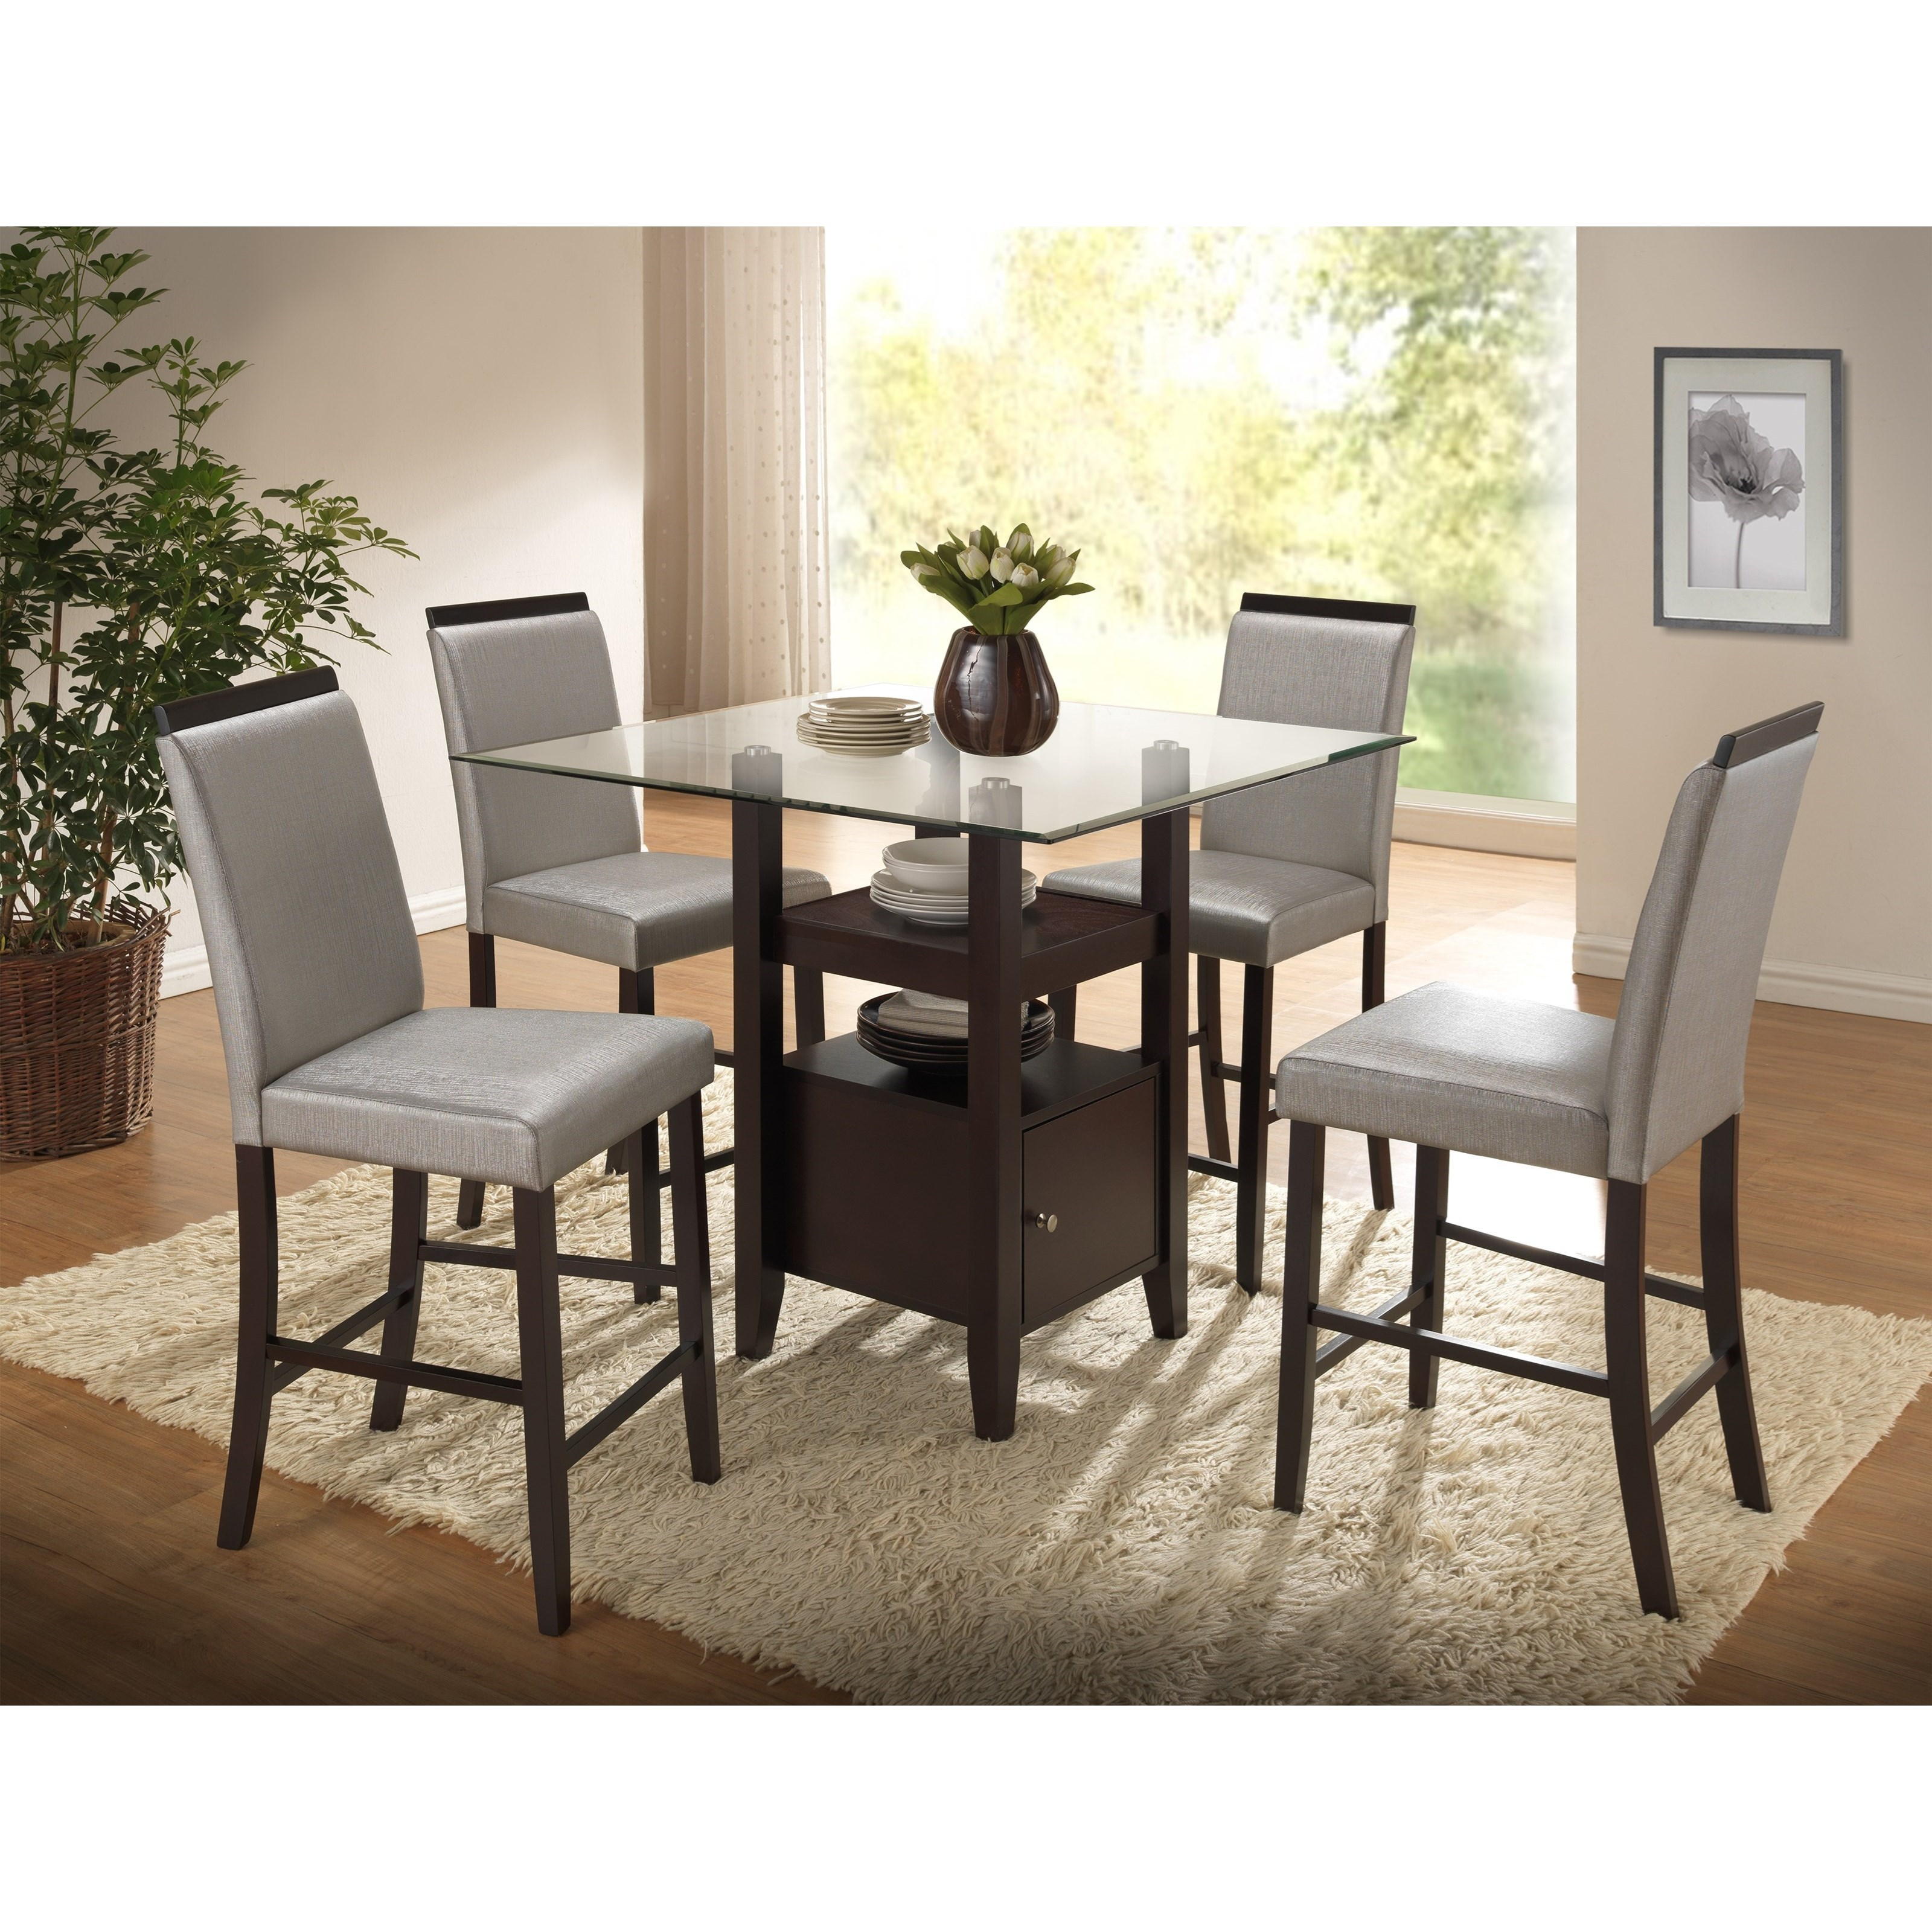 New Classic Natasha 5 Piece Counter Table Set - Item Number: D3972-12GT+12GB+4x23GR